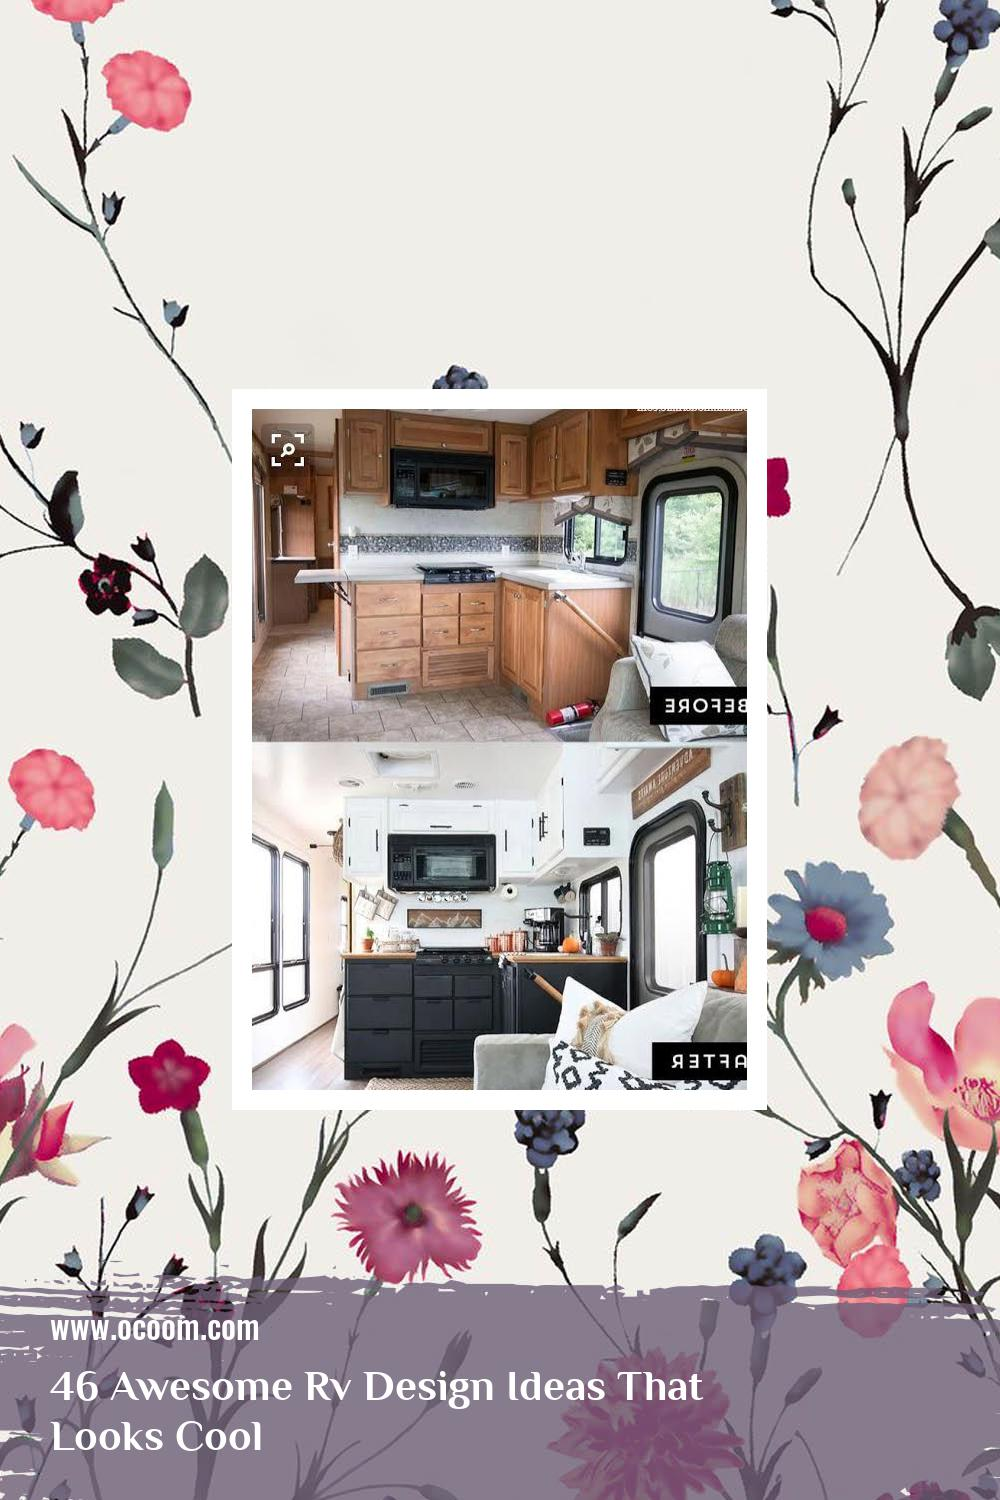 46 Awesome Rv Design Ideas That Looks Cool 11